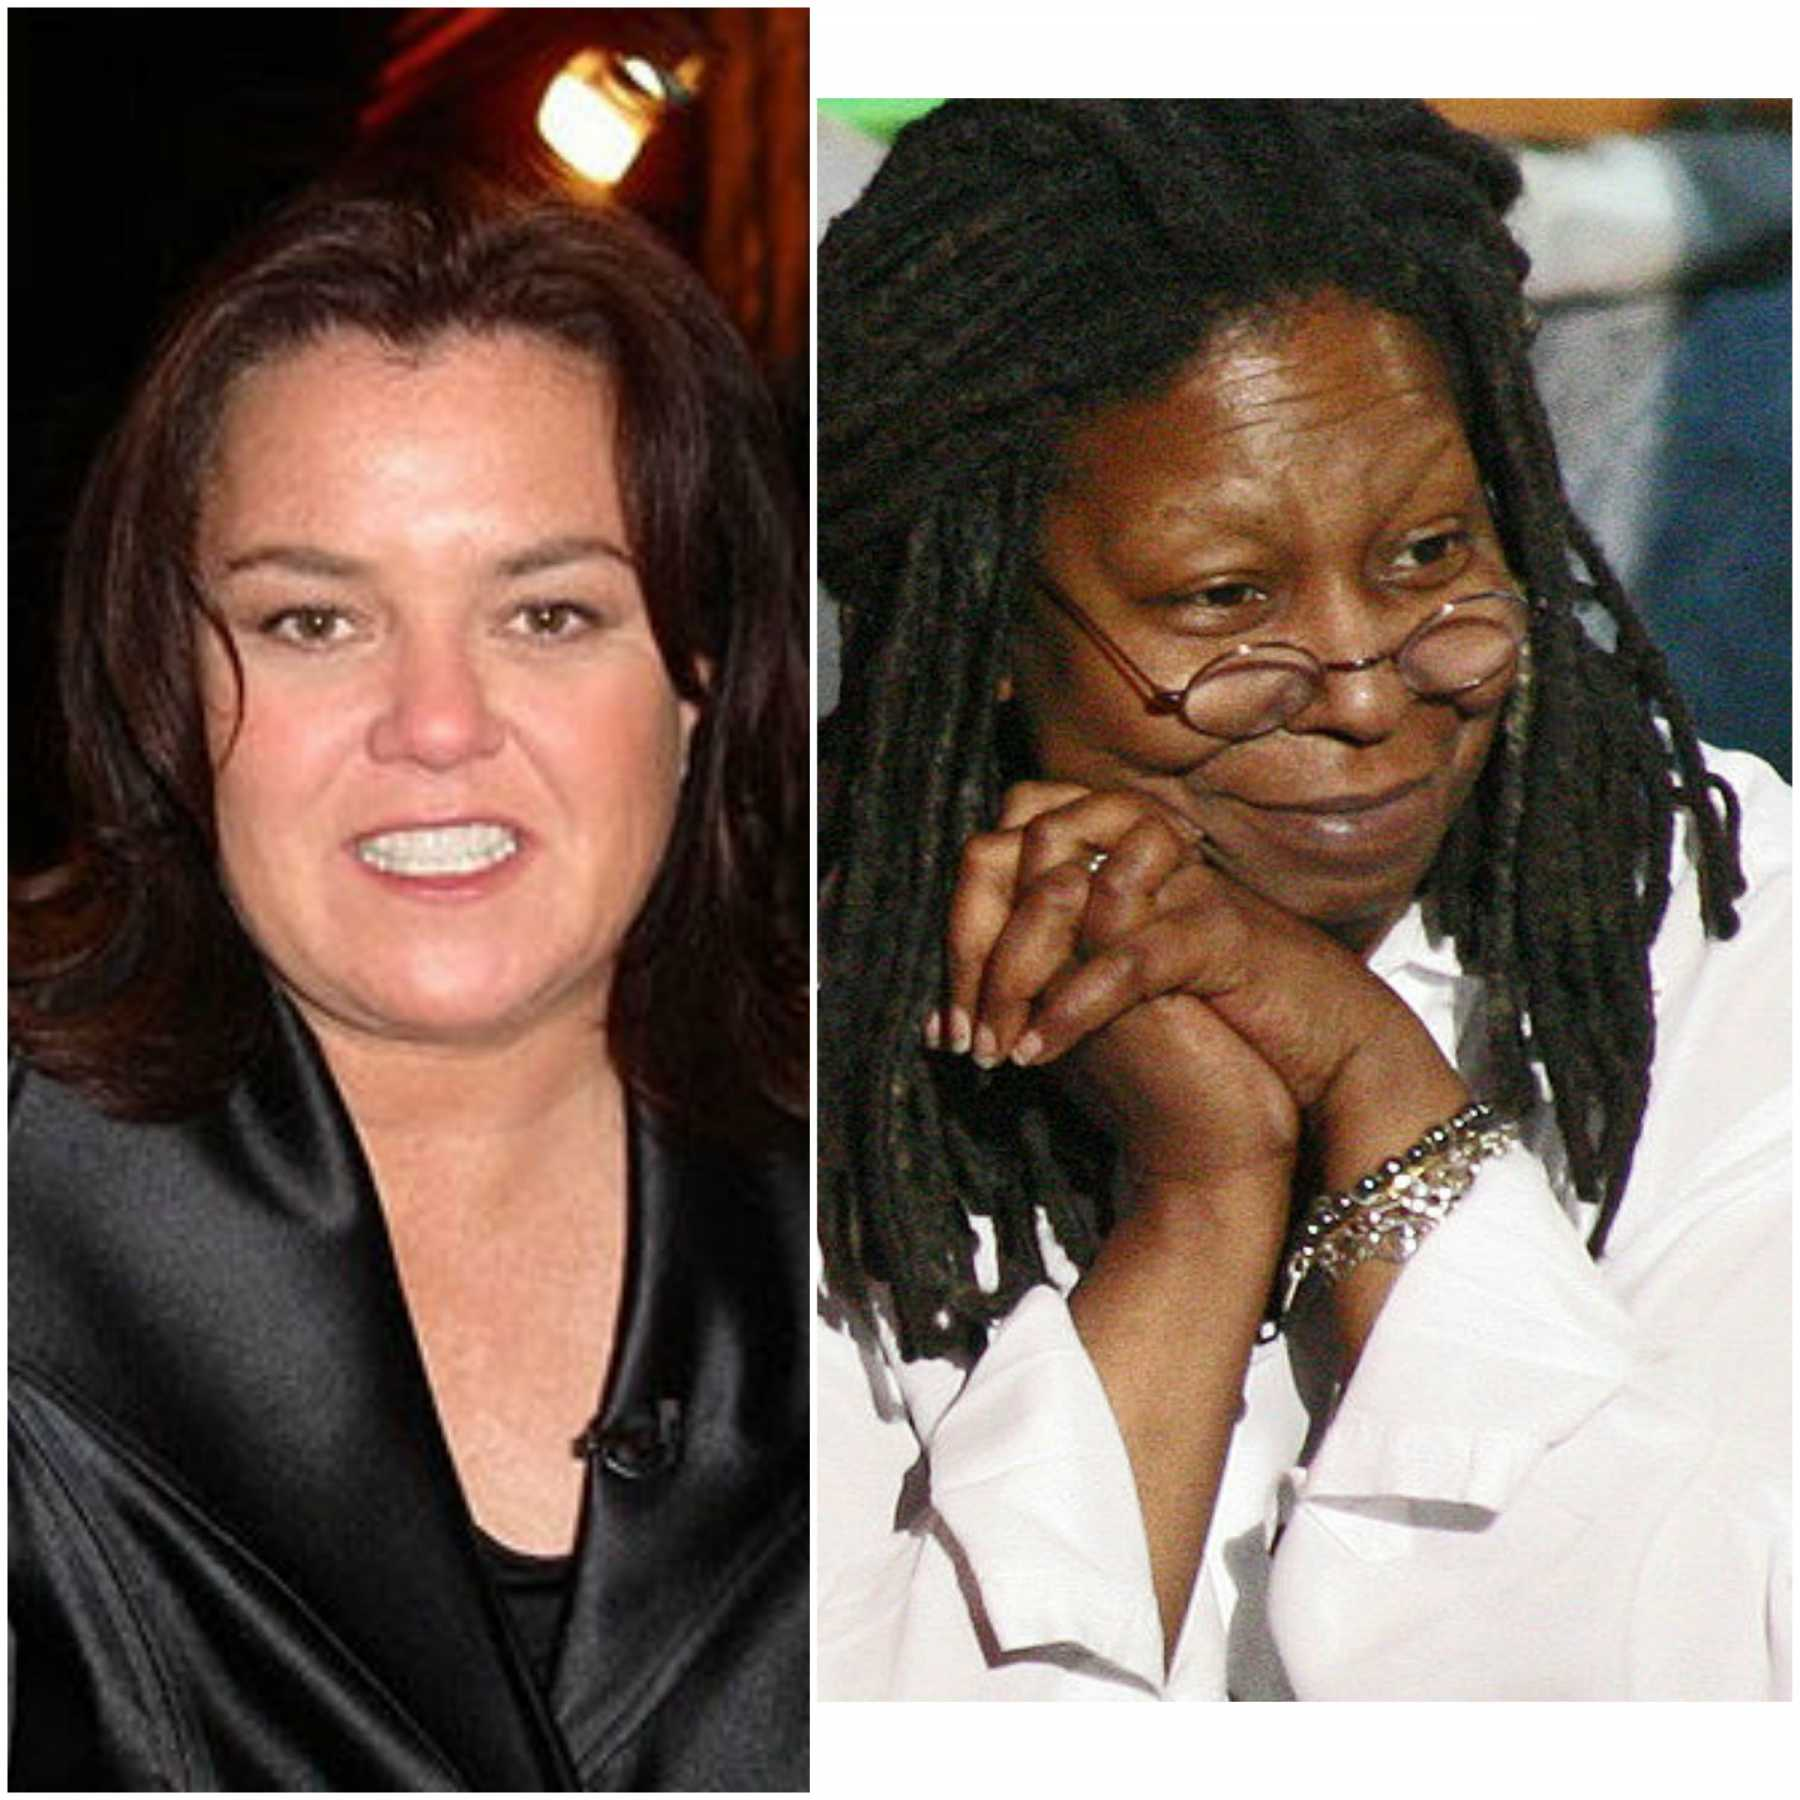 Rosie O'Donnell & Whoopi Goldberg Get Into MASSIVE Fight During Commercial Break On